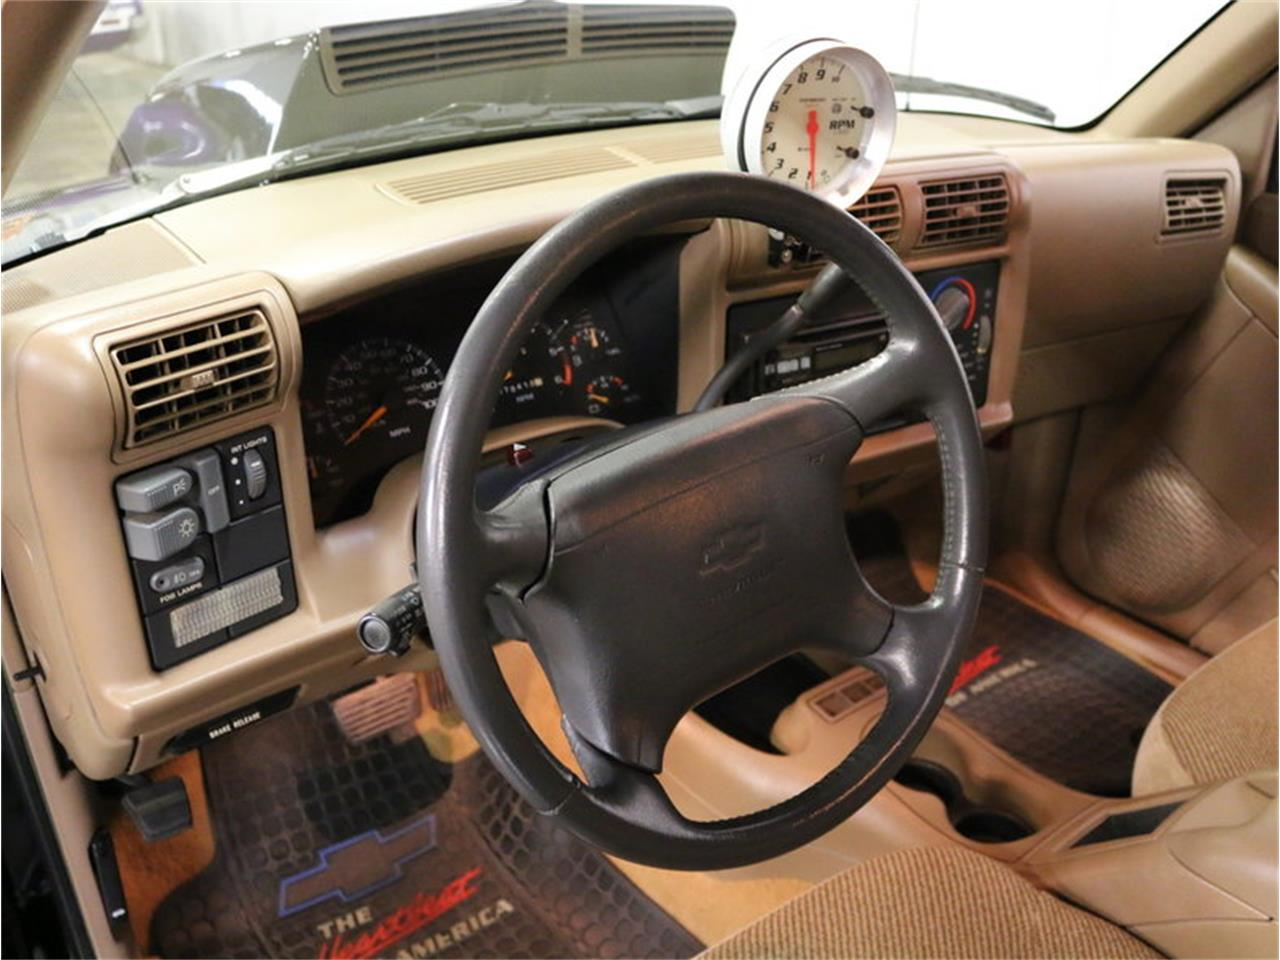 Large Picture of 1995 Chevrolet S-10 SS Pro Street located in Ft Worth Texas - $17,995.00 Offered by Streetside Classics - Dallas / Fort Worth - MOBZ